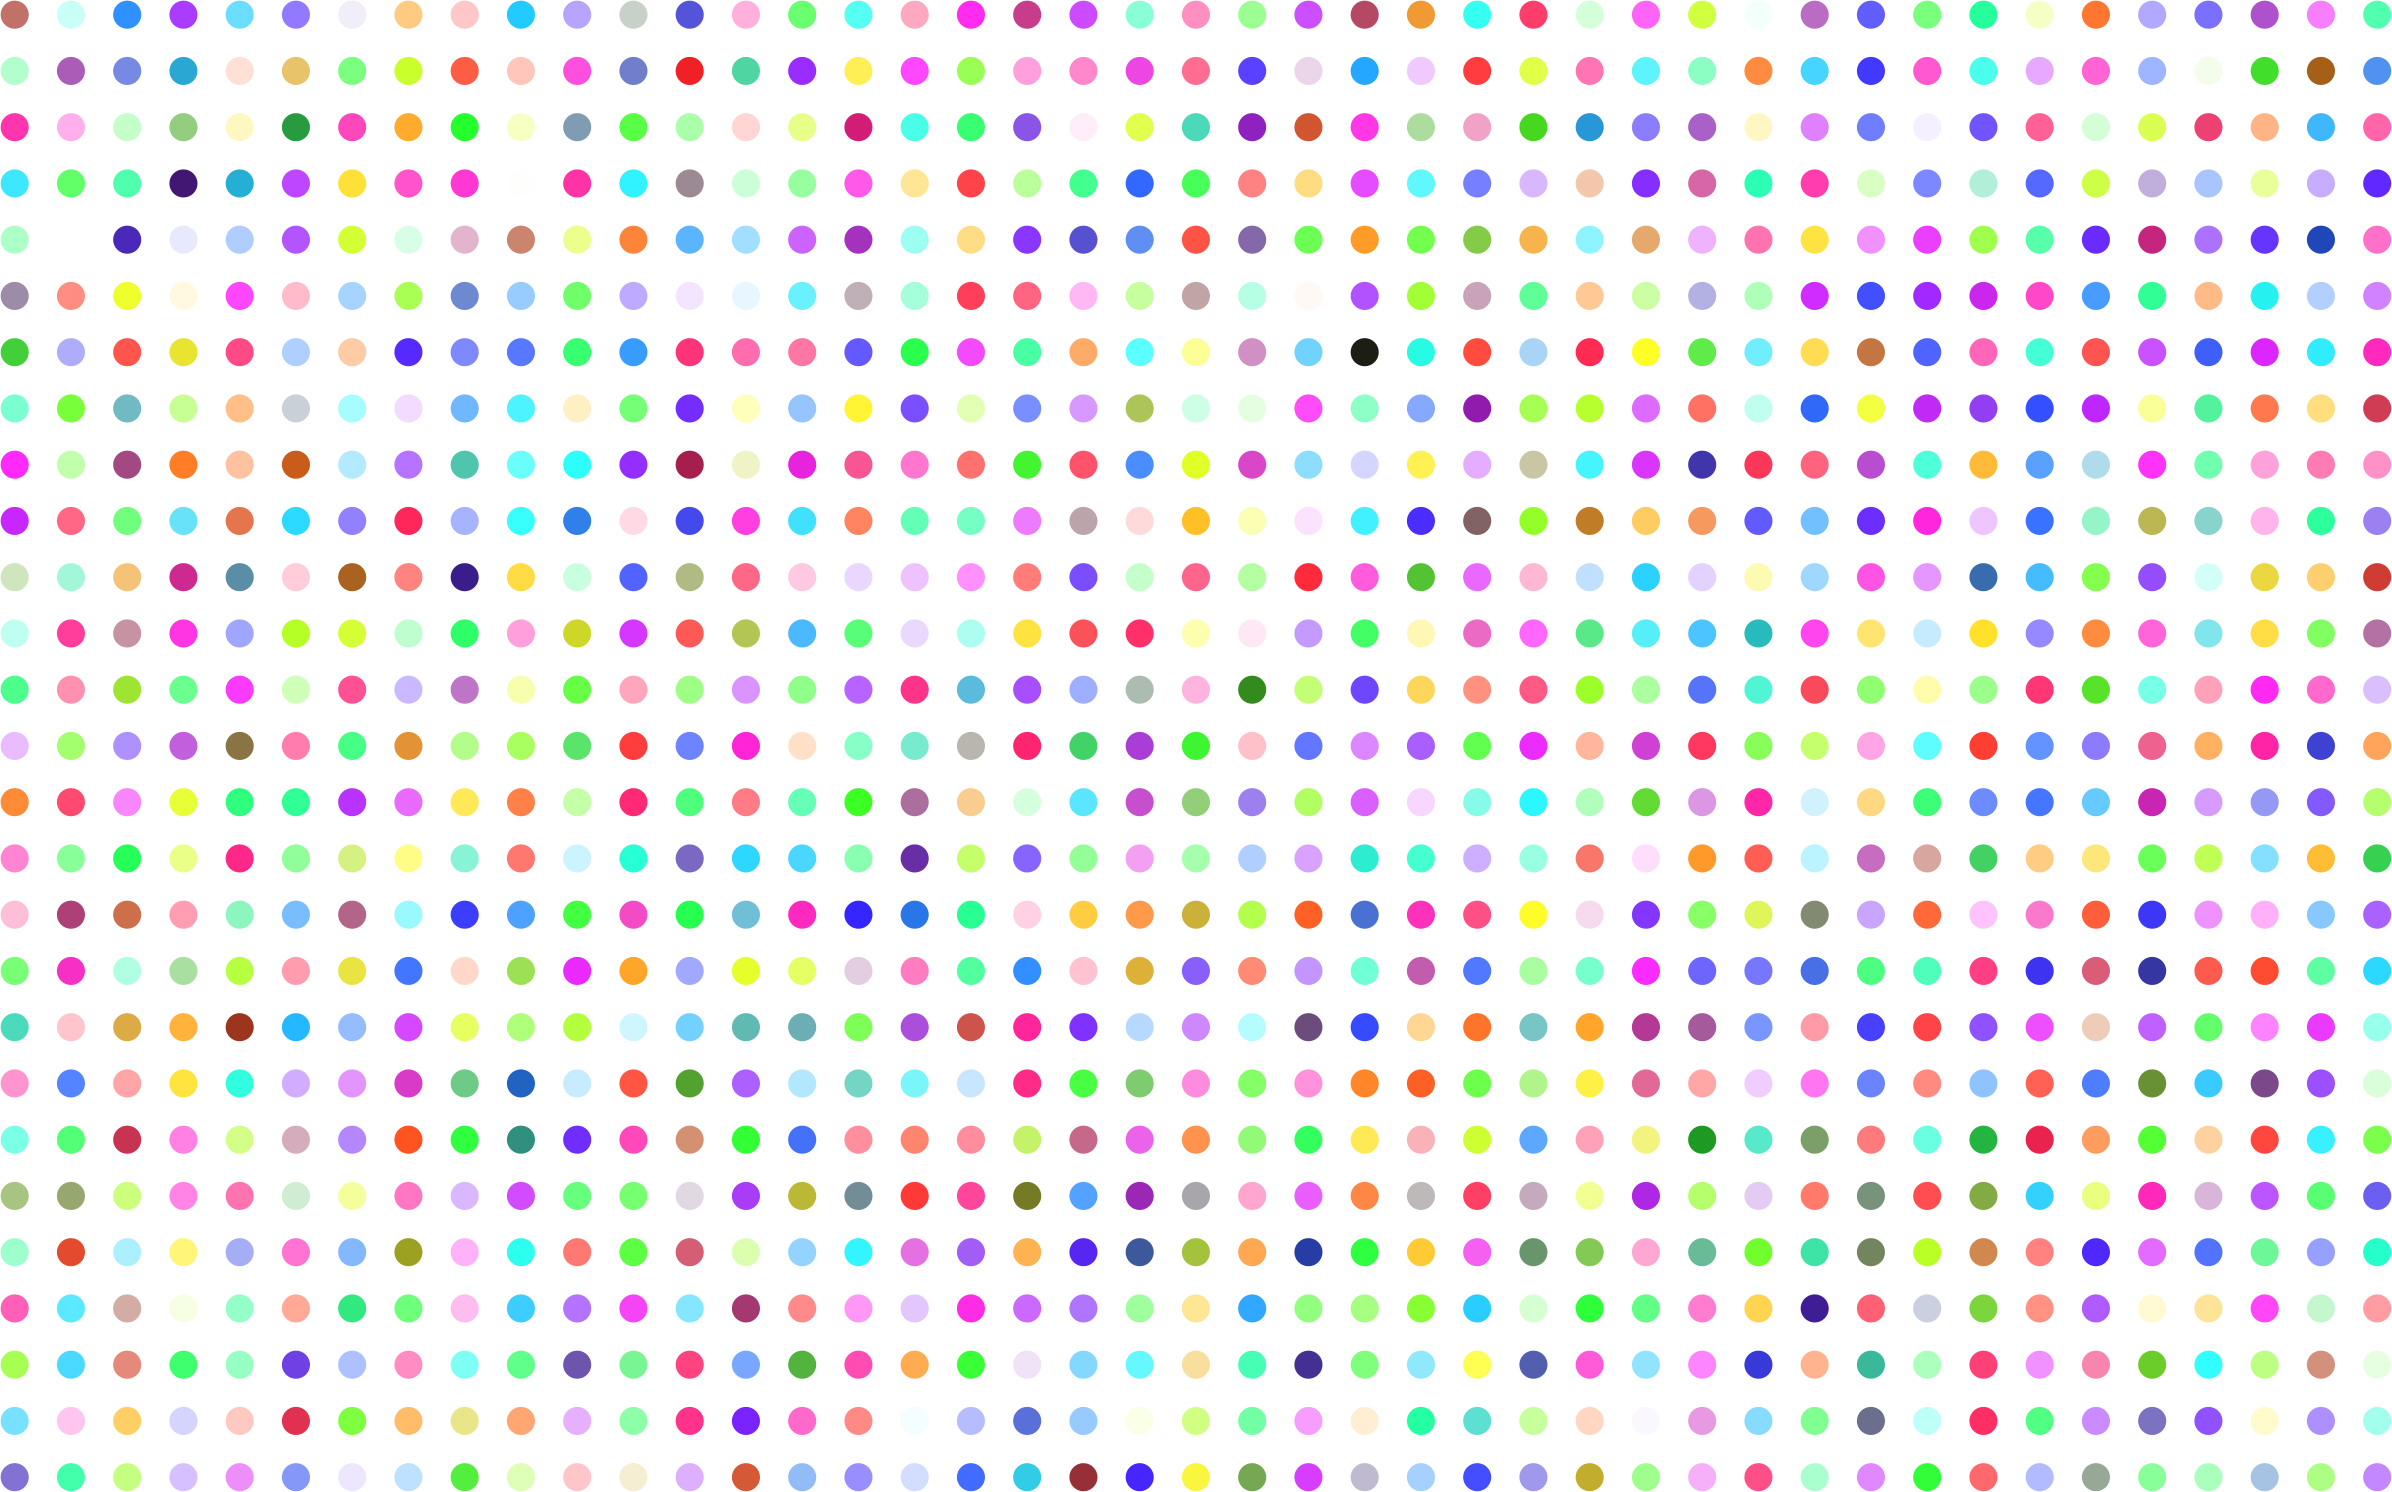 Polka dot background png. Transparent images this free